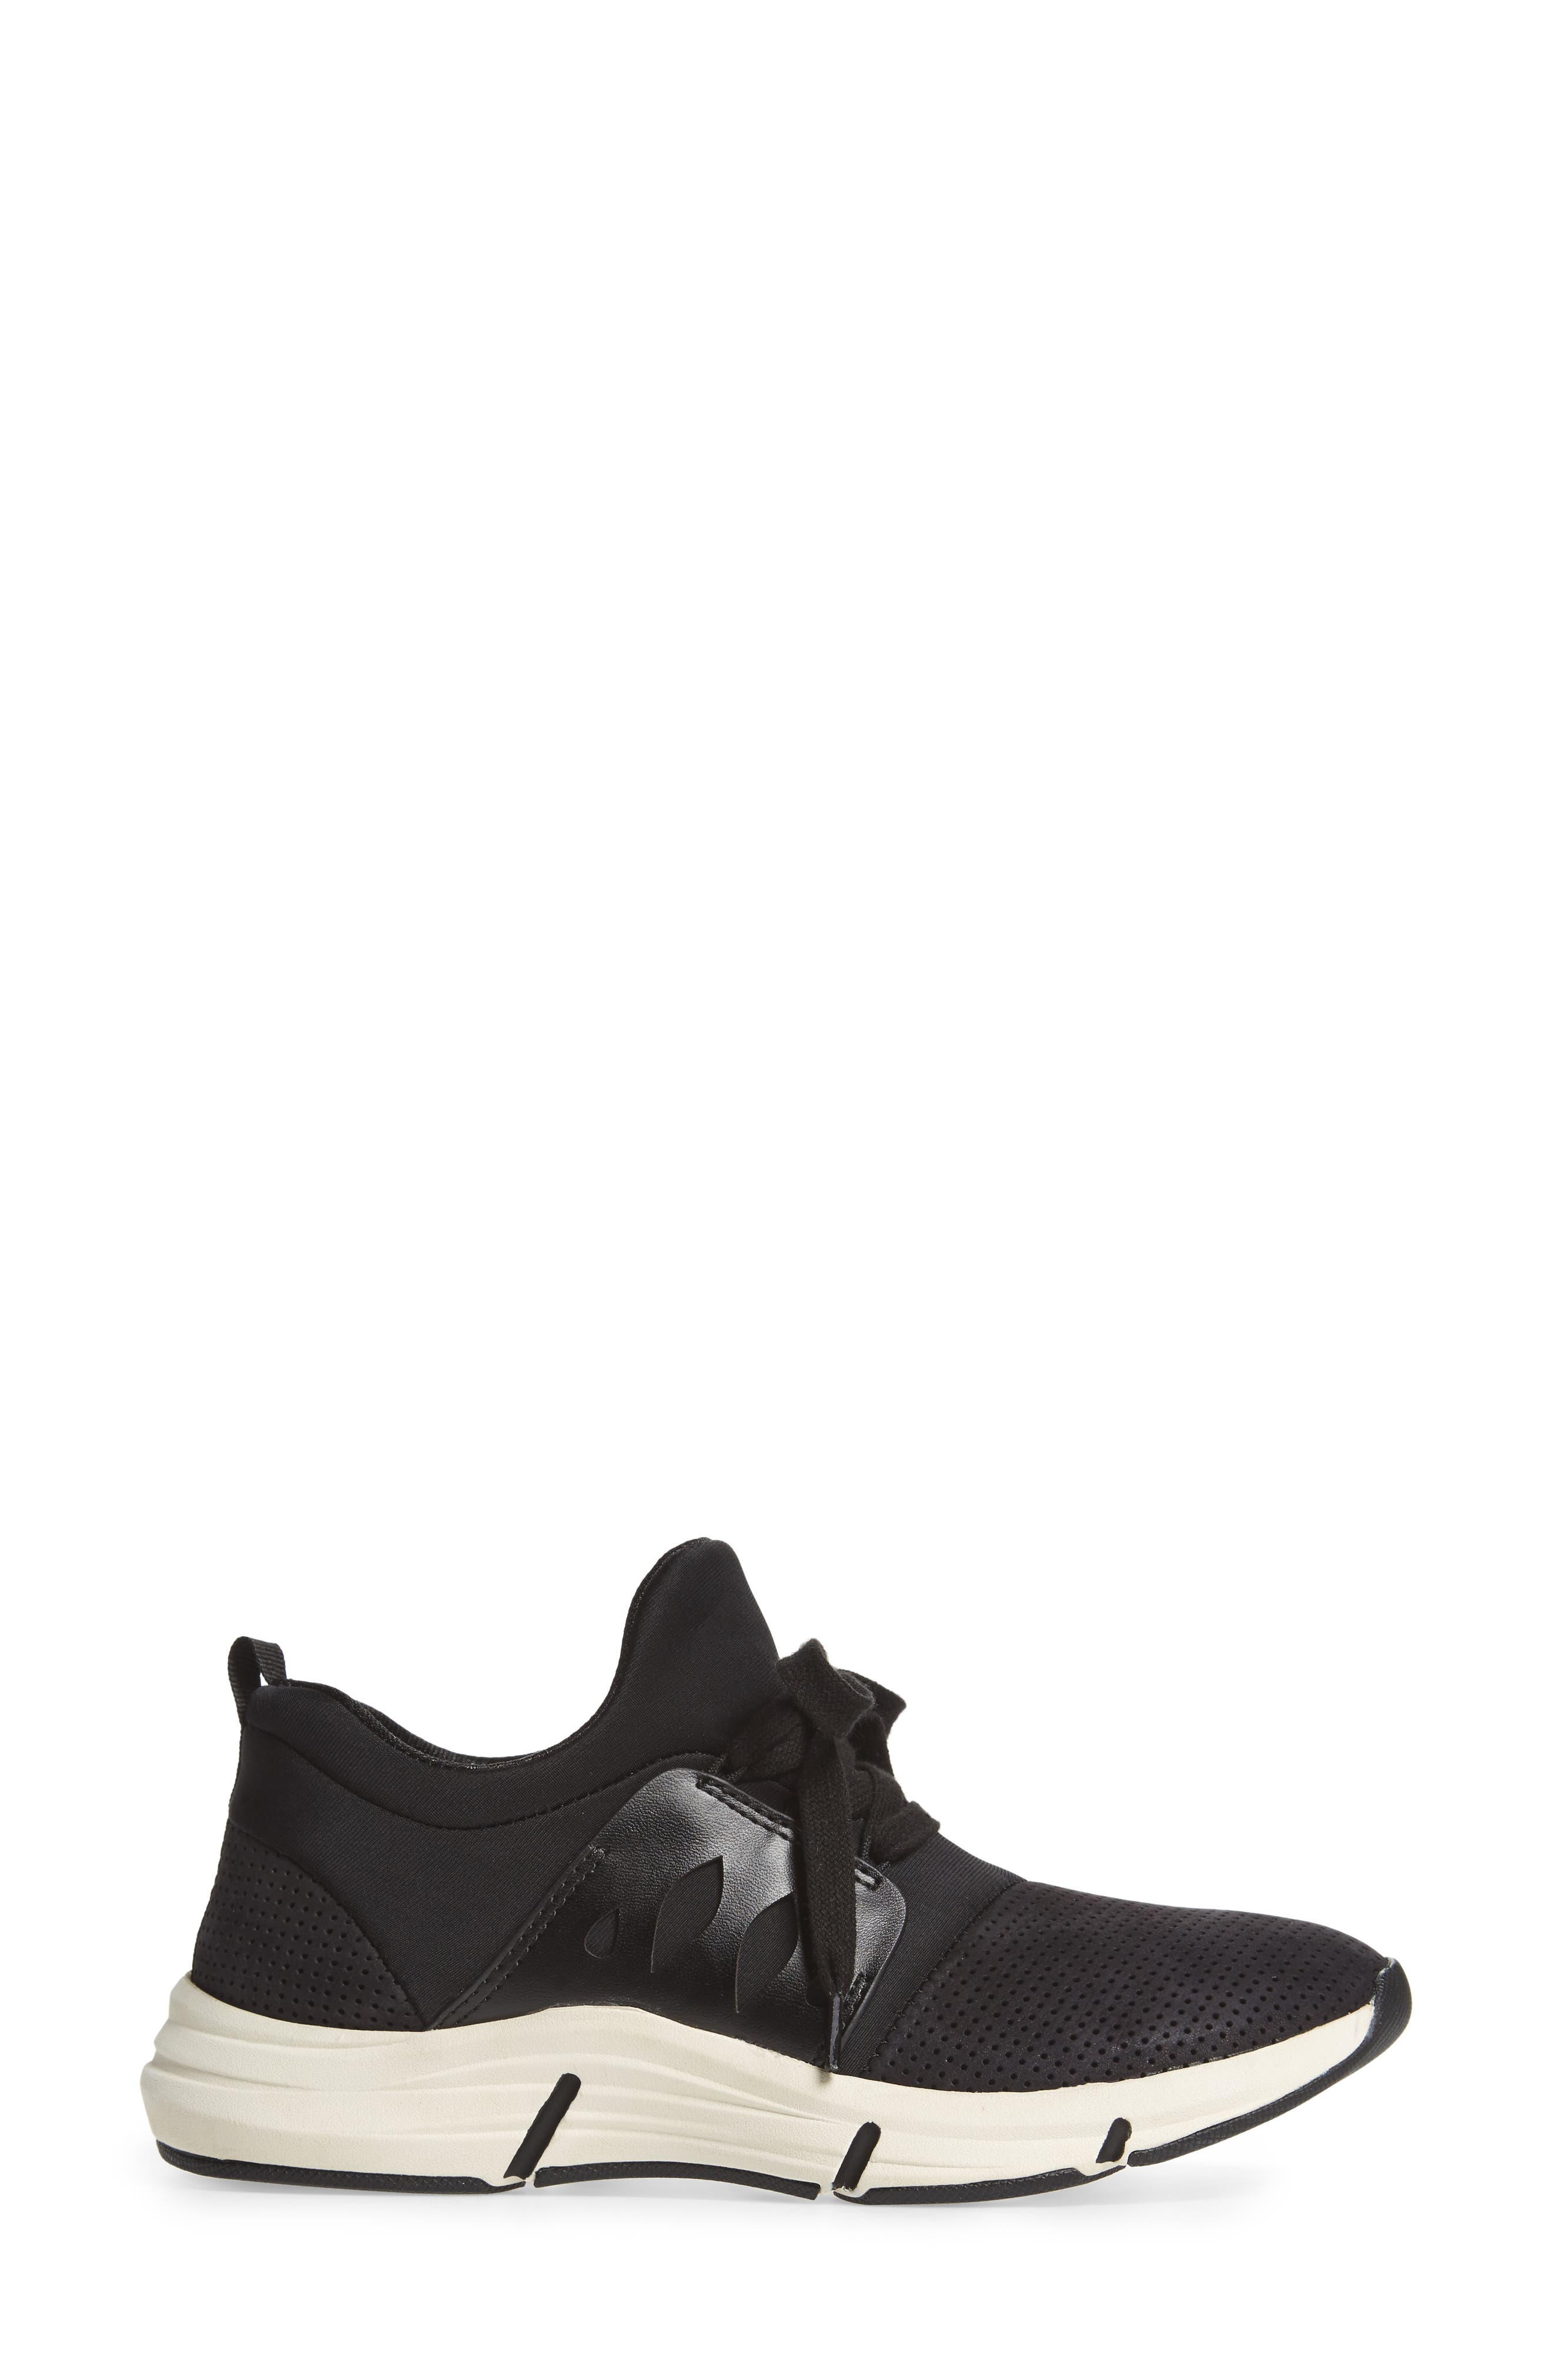 Ordell Sneaker,                             Alternate thumbnail 7, color,